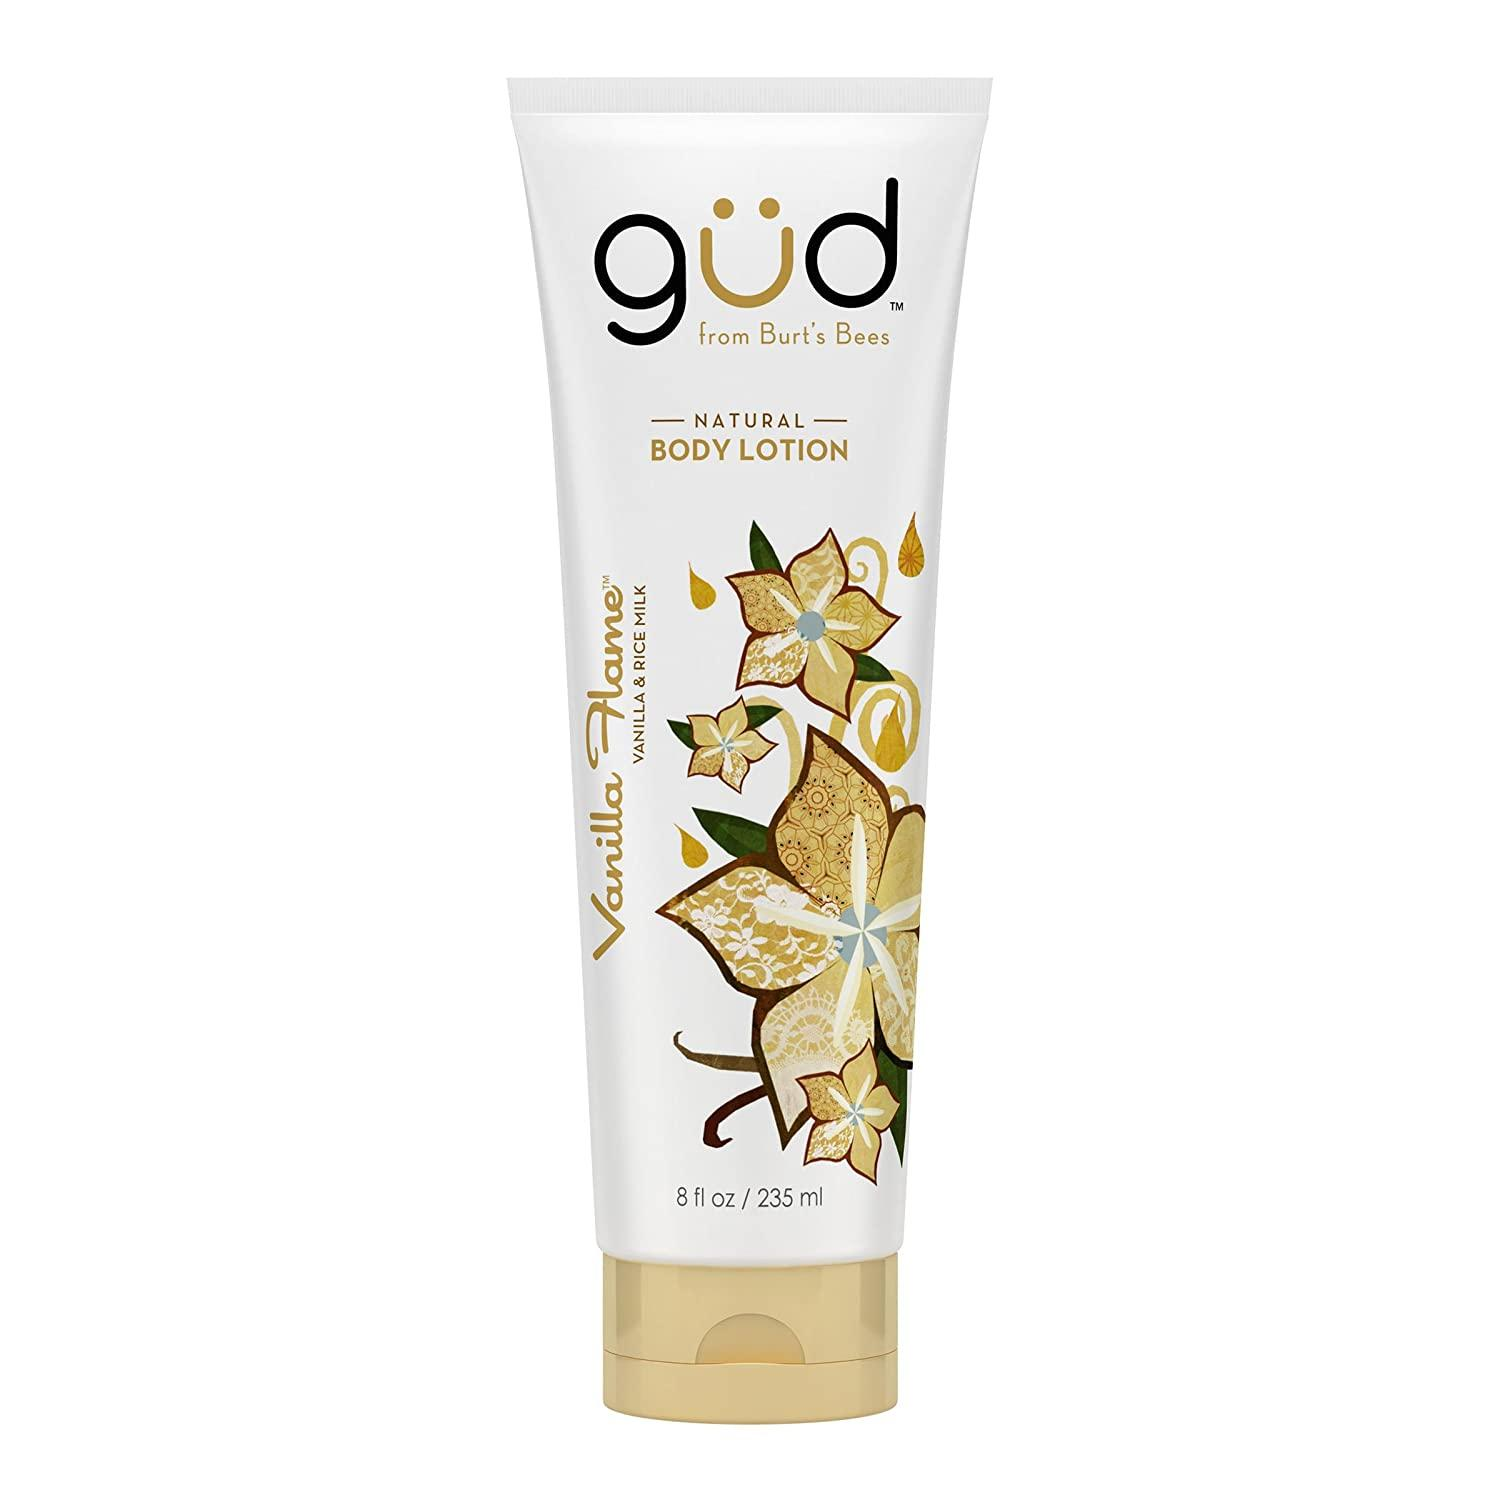 Gud Vanilla Flame Natural Body Lotion, 8 Fluid Ounces